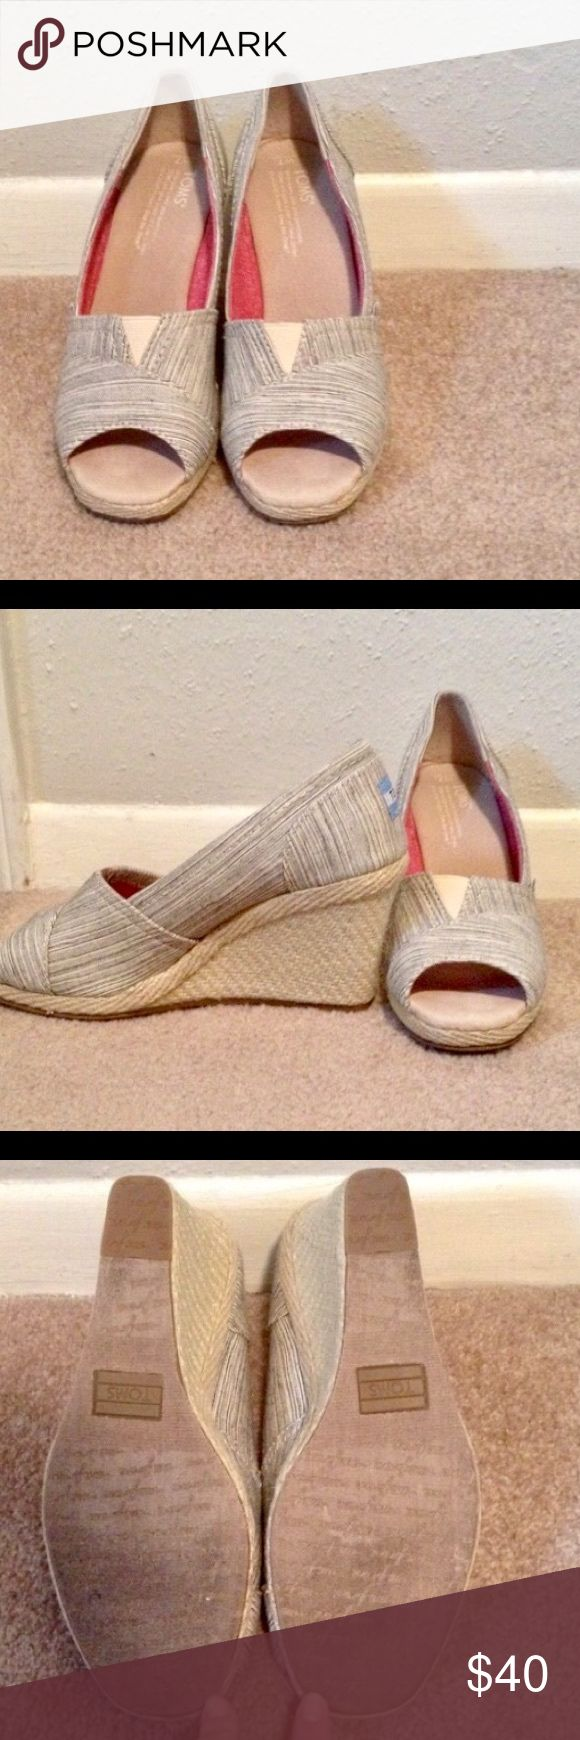 Toms wedges Great condition worn once size 7 TOMS Shoes Wedges